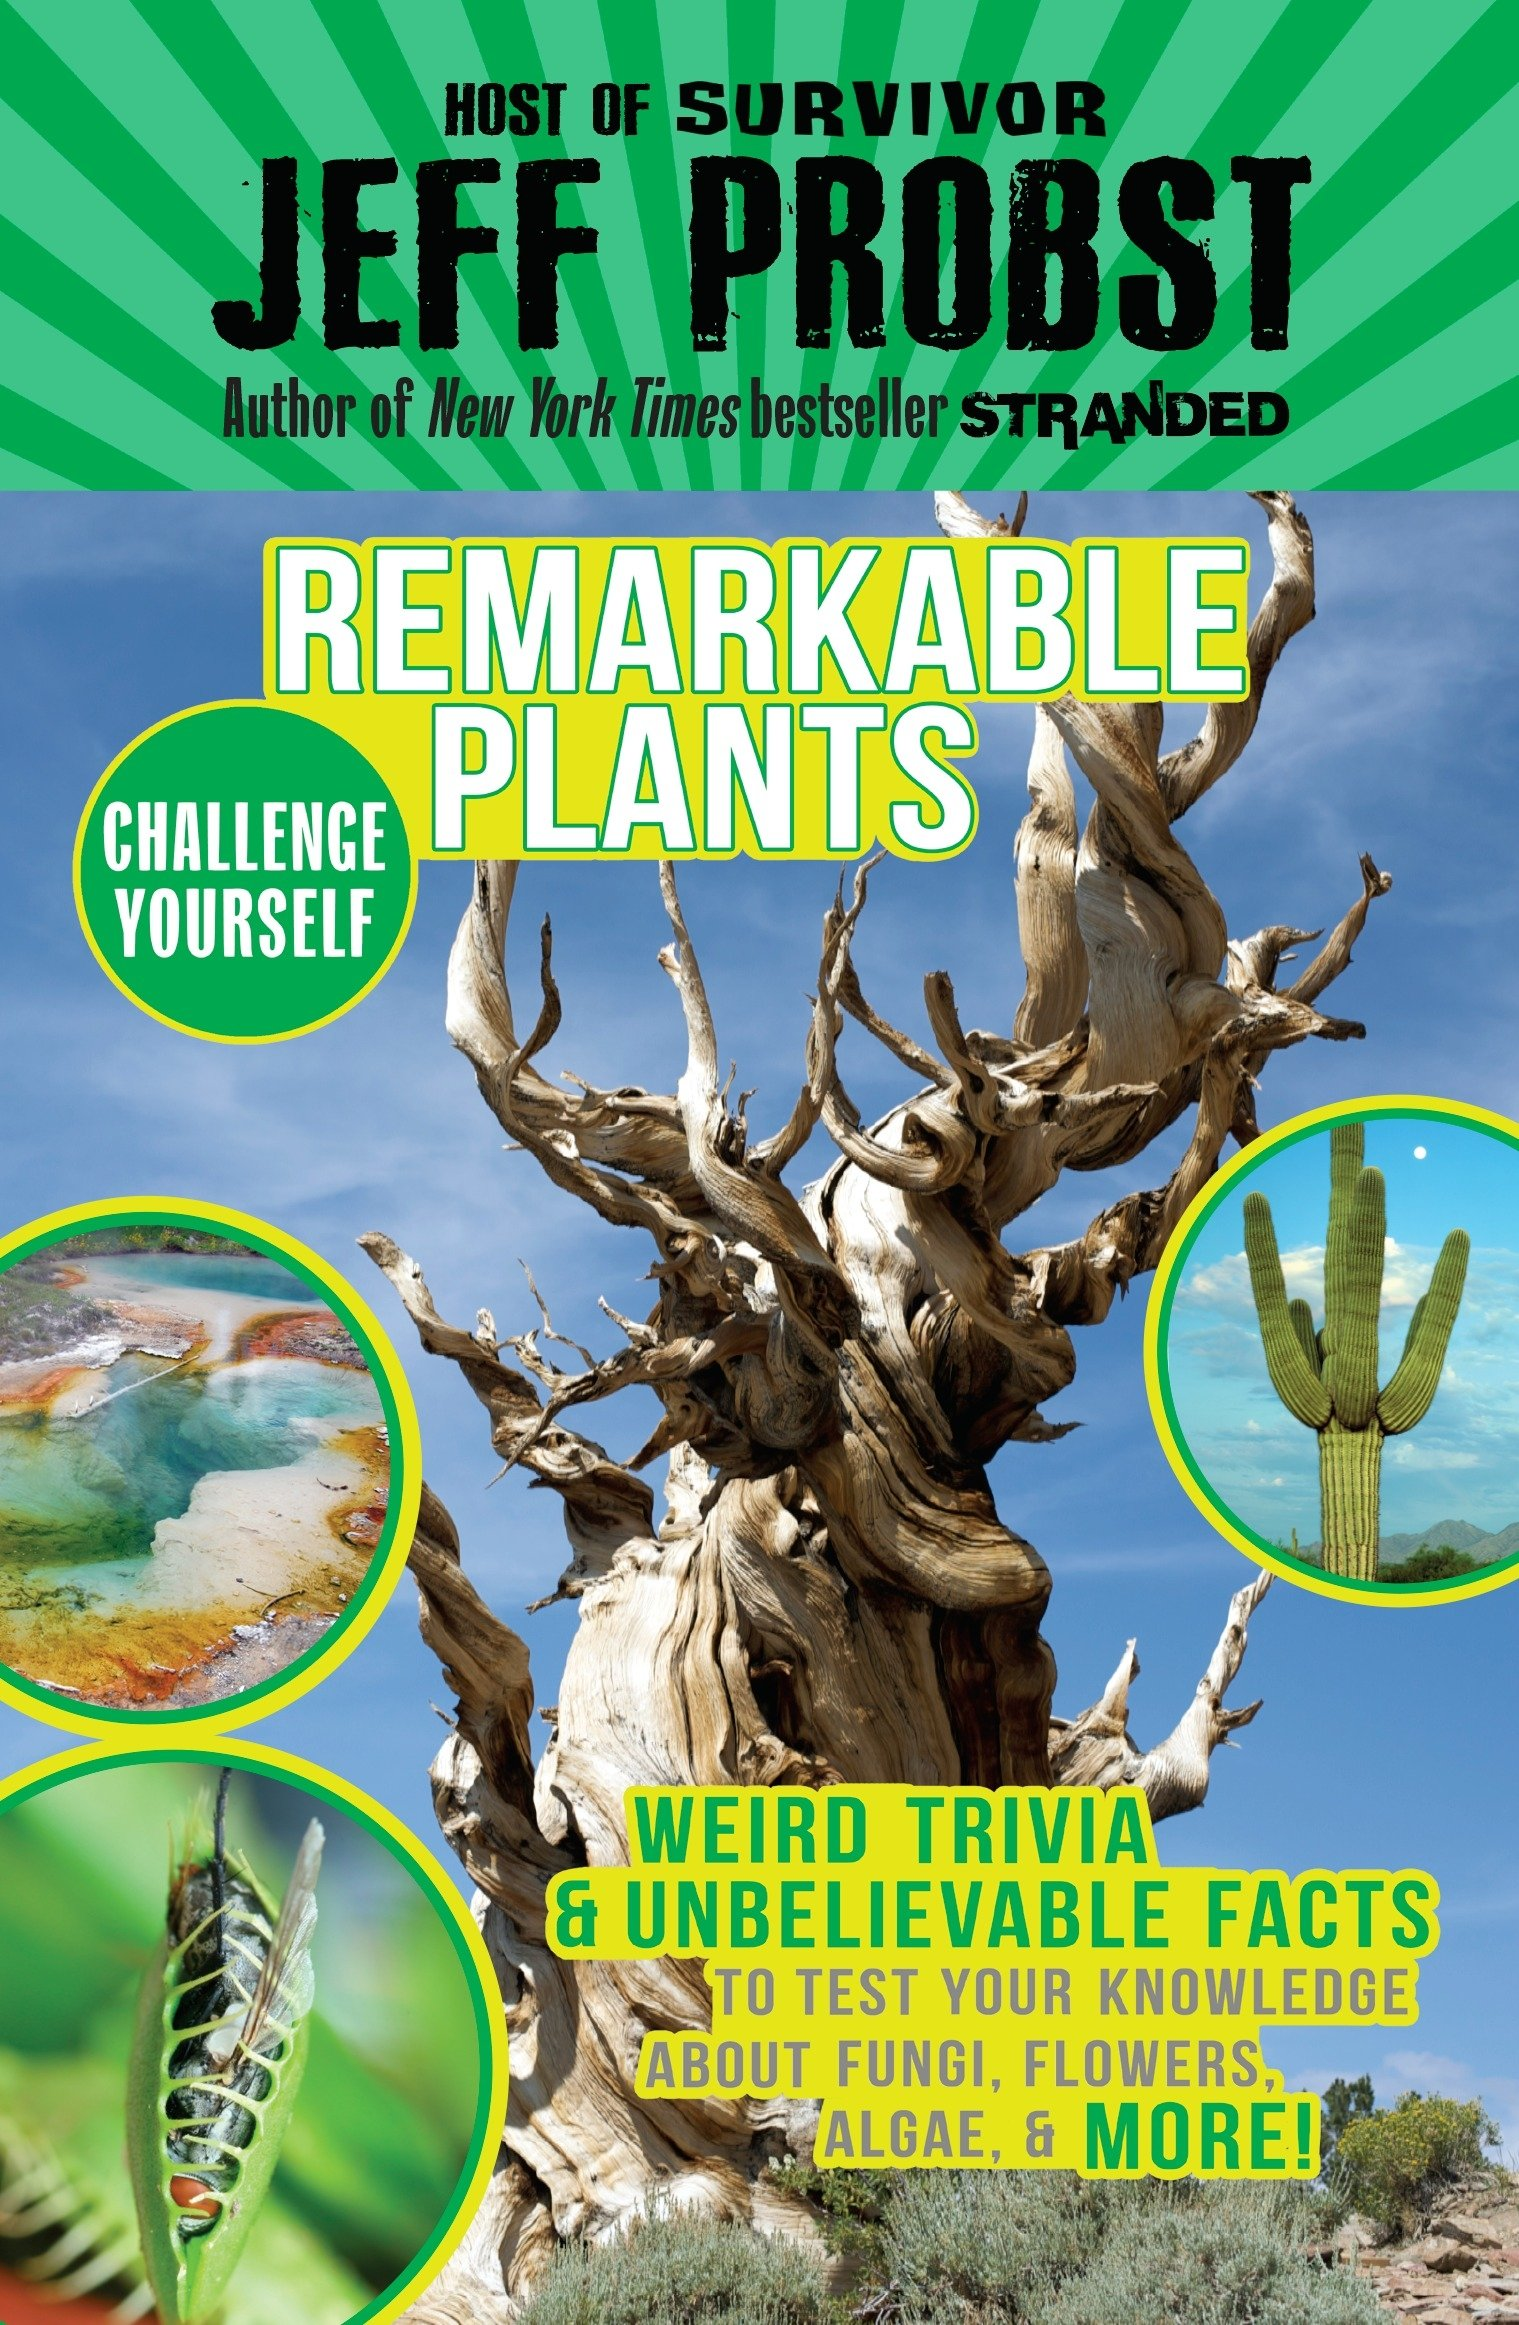 Remarkable Plants: Weird Trivia & Unbelievable Facts to Test Your Knowledge About Fungi, Flowers, Algae & More! (Challenge Yourself)